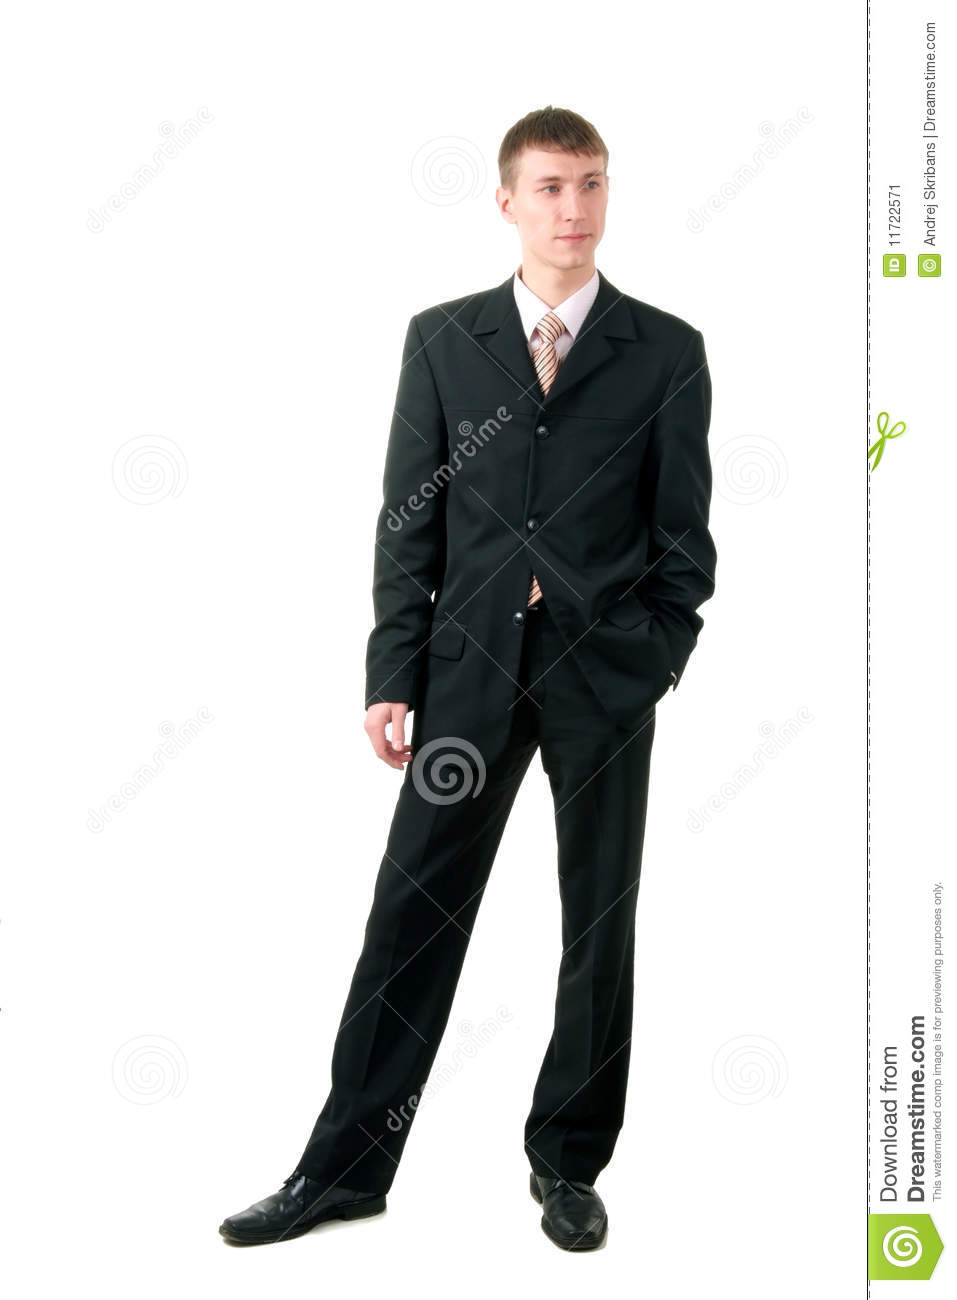 Mens Clothing Subscription >> Attractive Men In Formal Wear Stock Image - Image: 11722571